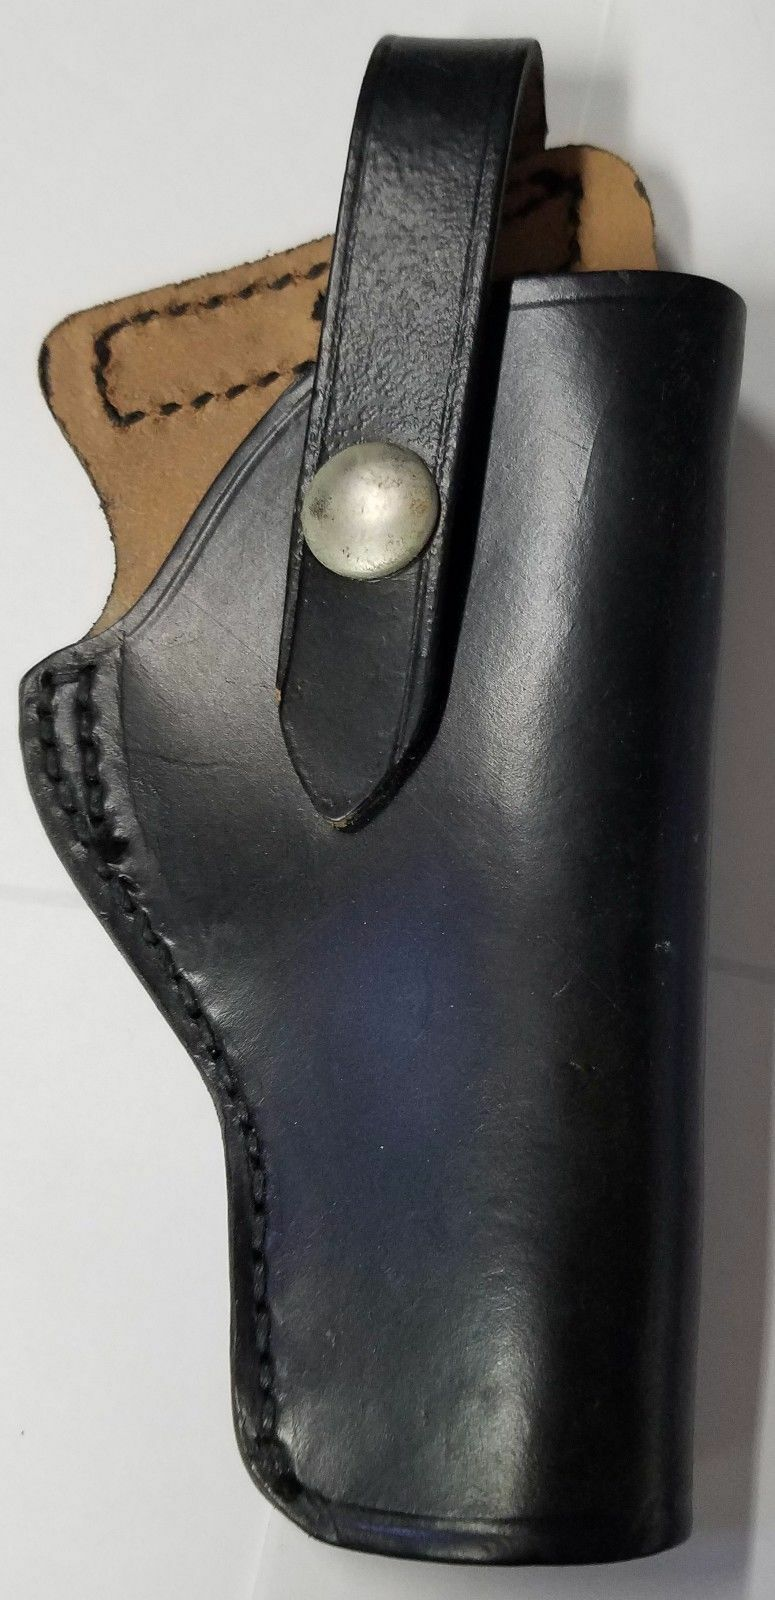 Audley F-3 Leather Right-Handed Holster for most small revolvers